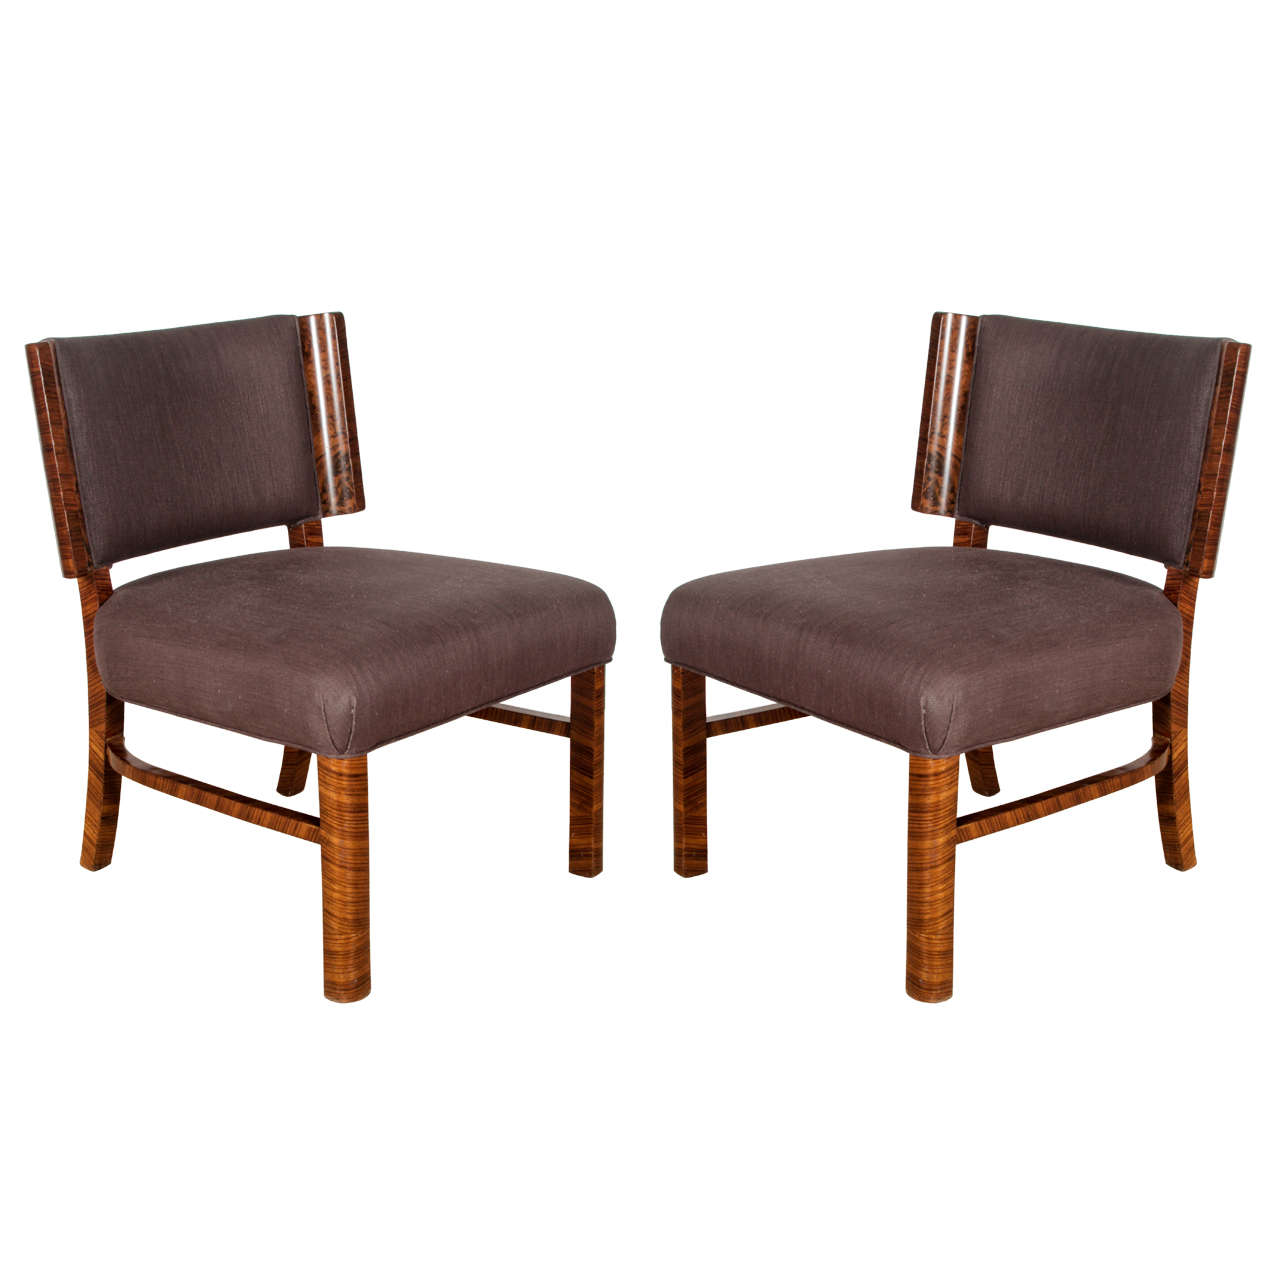 Pair of french modern macassar chairs for French modern furniture